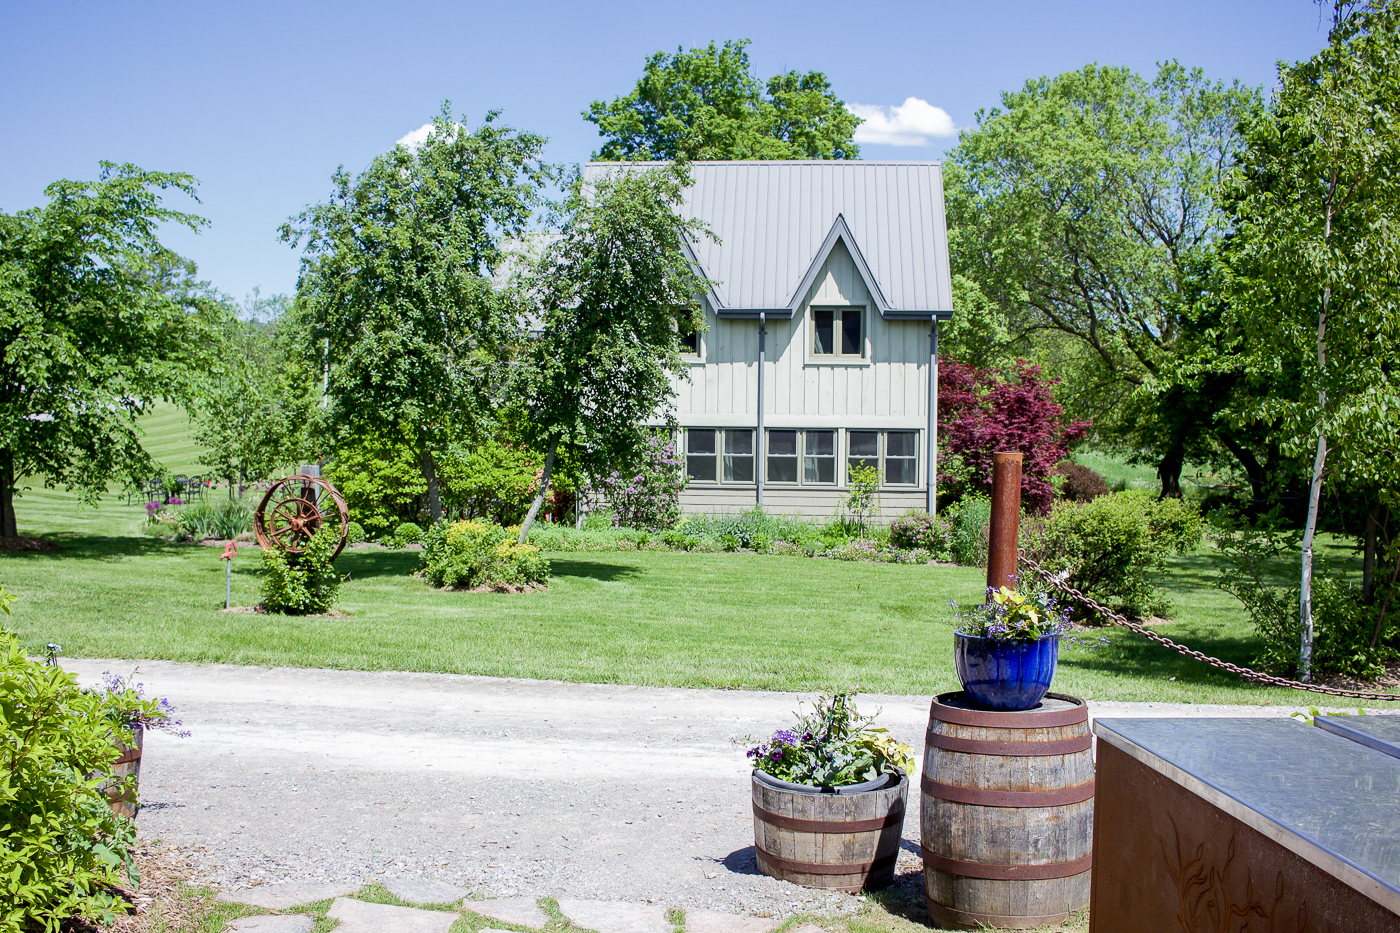 the view outside the main barn area at south pond farms